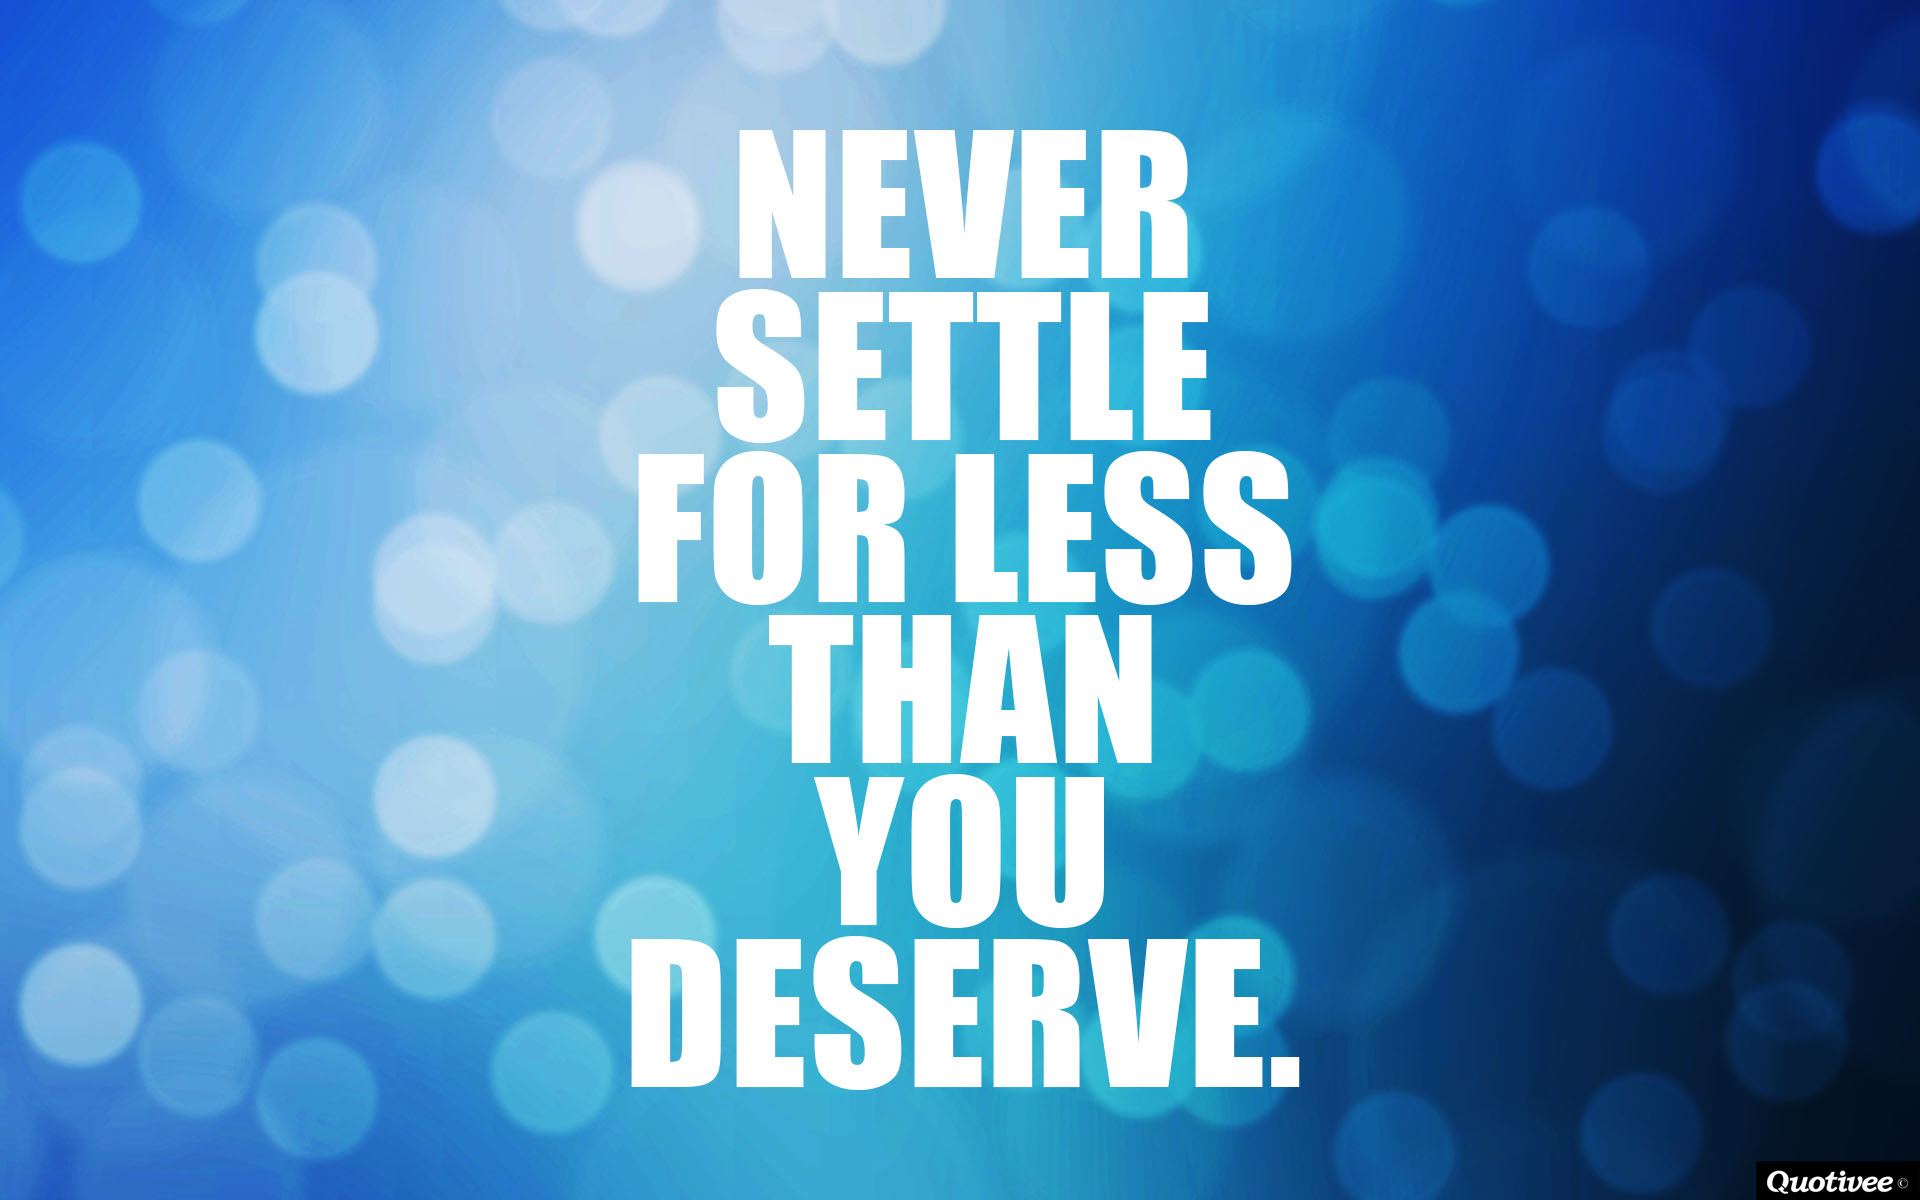 Motivational Hd Quotes Wallpaper Never Settle For Less Than You Deserve Quotivee